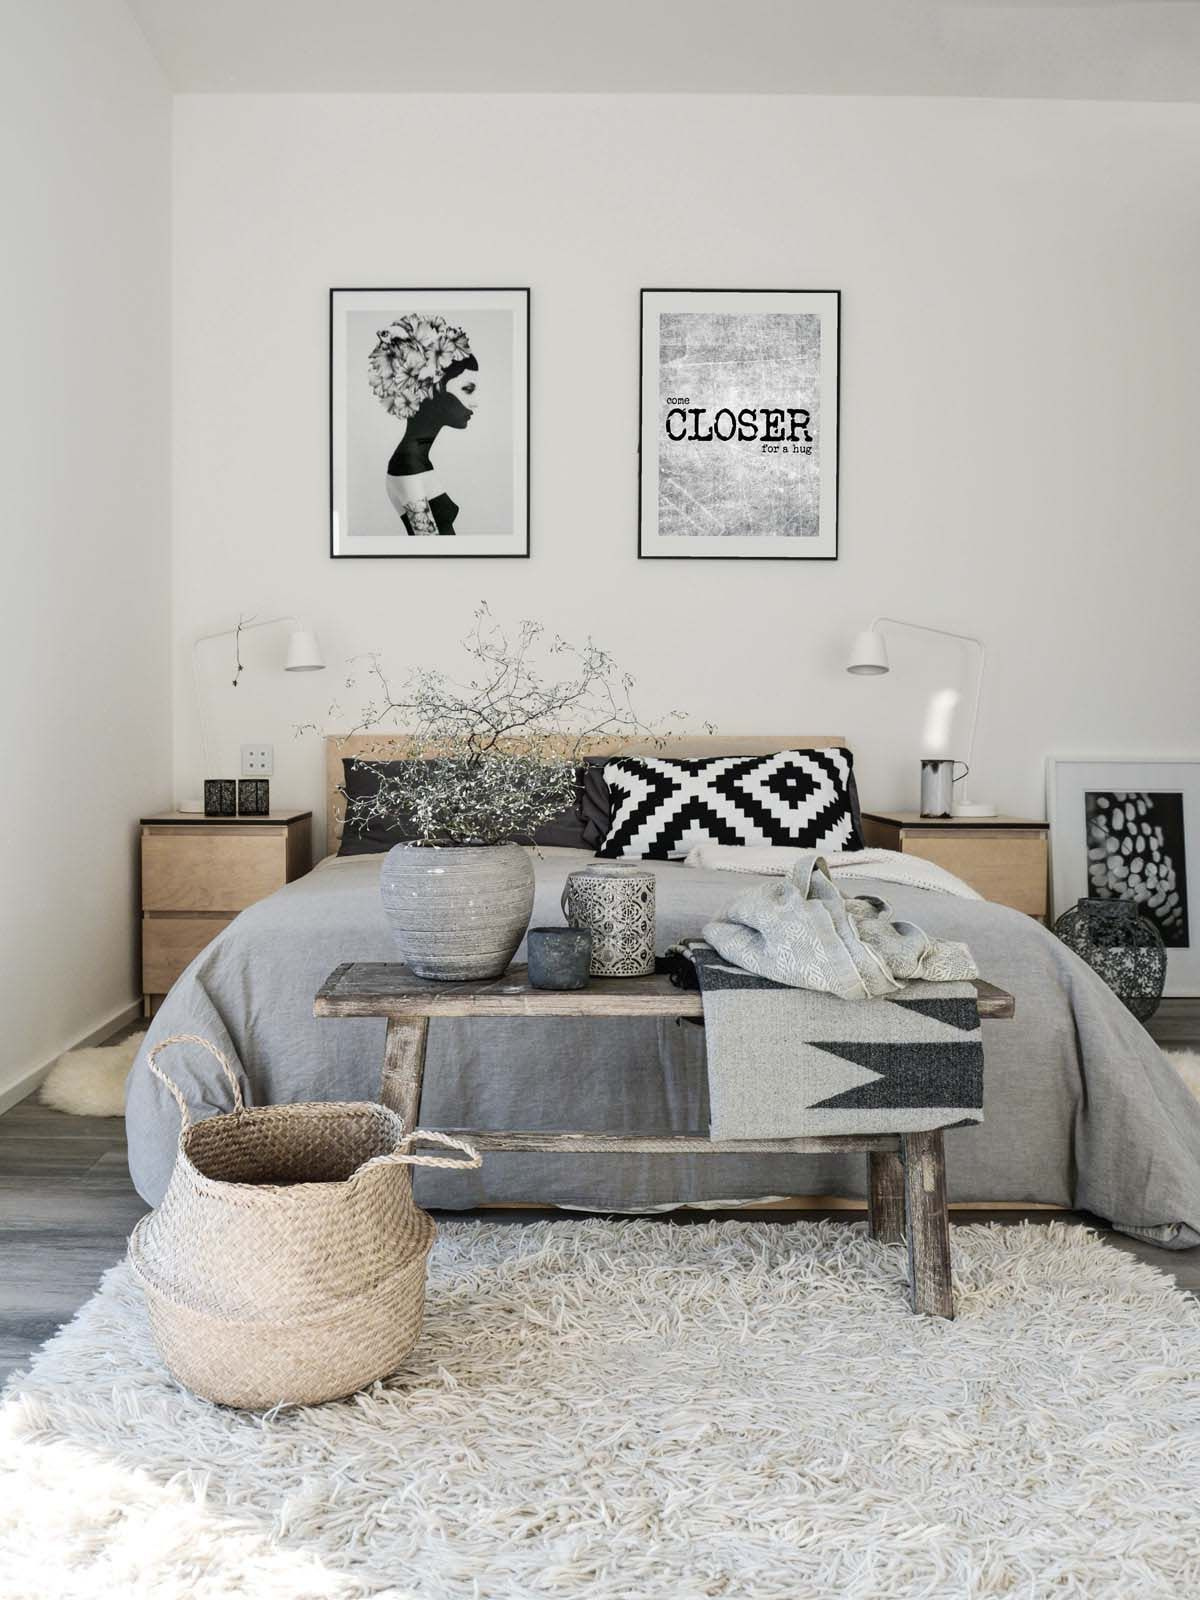 45 Scandinavian bedroom ideas that are modern and stylish     45 Scandinavian bedroom ideas that are modern and stylish